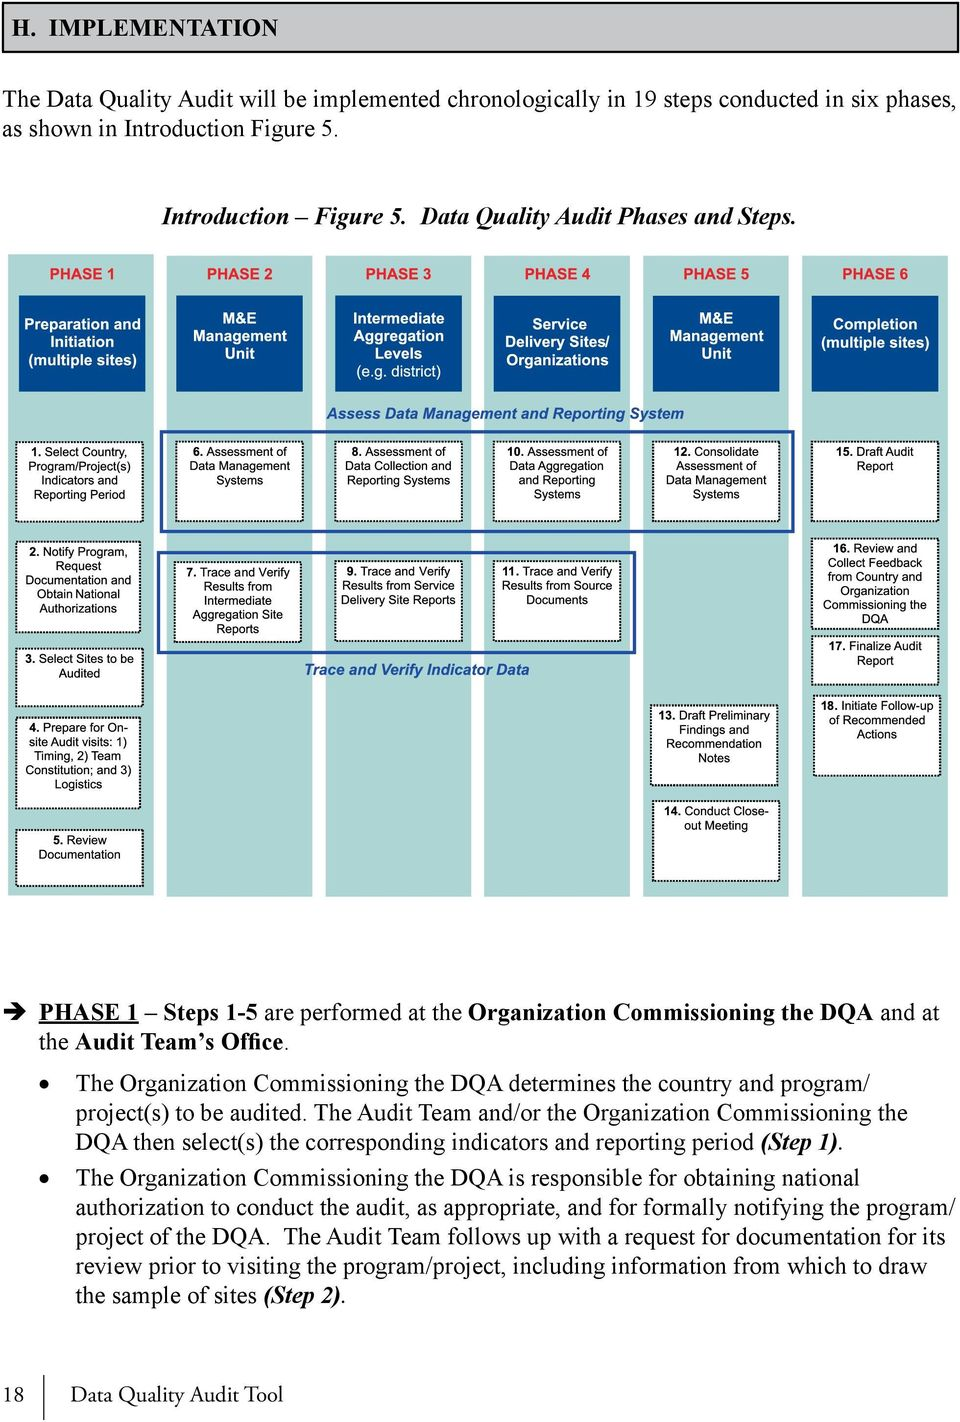 The Organization Commissioning the DQA determines the country and program/ project(s) to be audited.